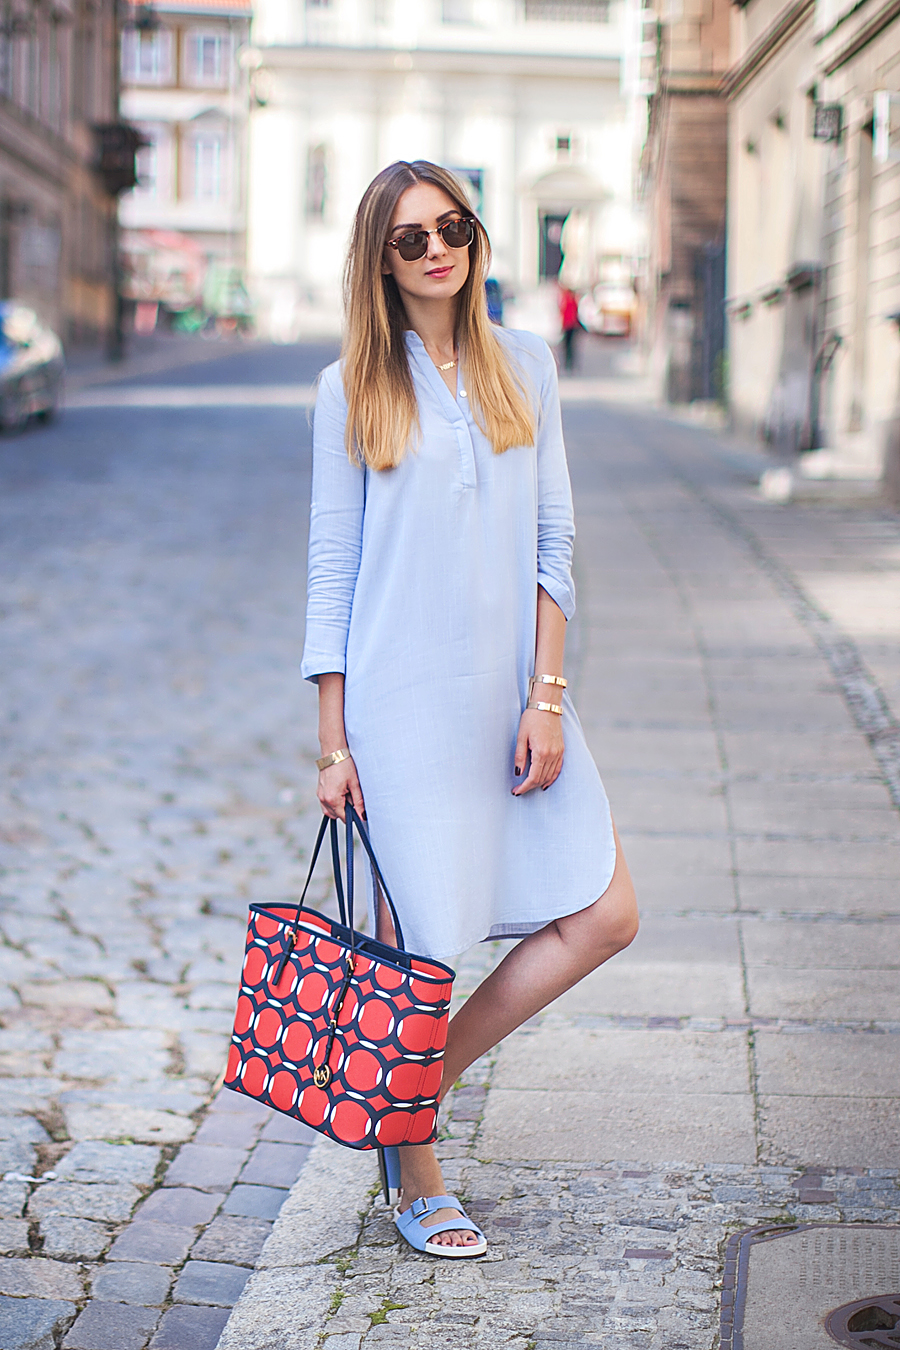 Nika Huk is wearing a light blue shirt dress from ChicNova, matching sliders and sunglasses from ASOS and a bag from Michael Kors